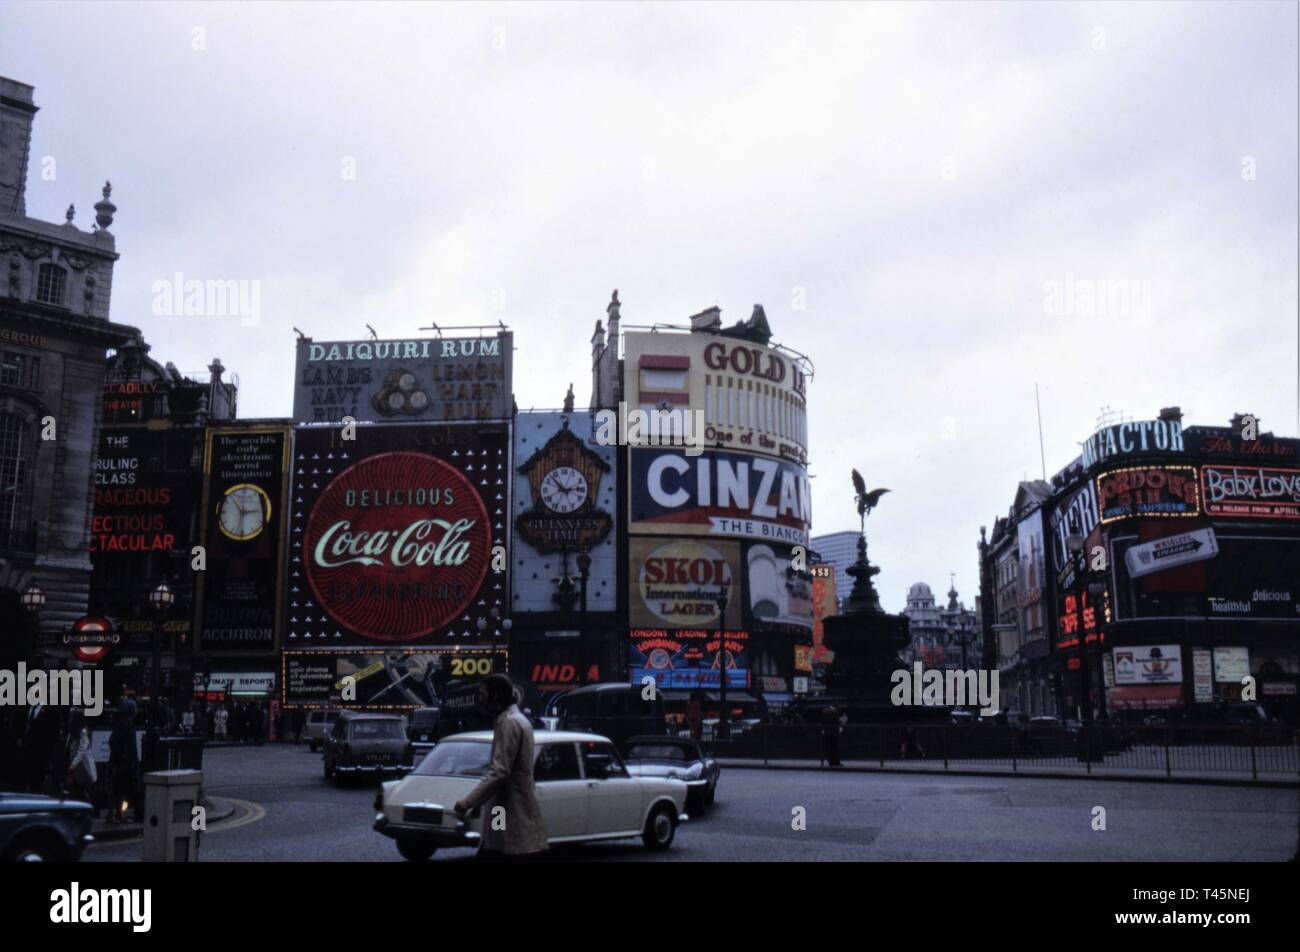 PICCADILLY CIRCUS LONDON West End Swinging London early 1969 Eros statue in original position Illuminated Signs Colour Photo - Stock Image